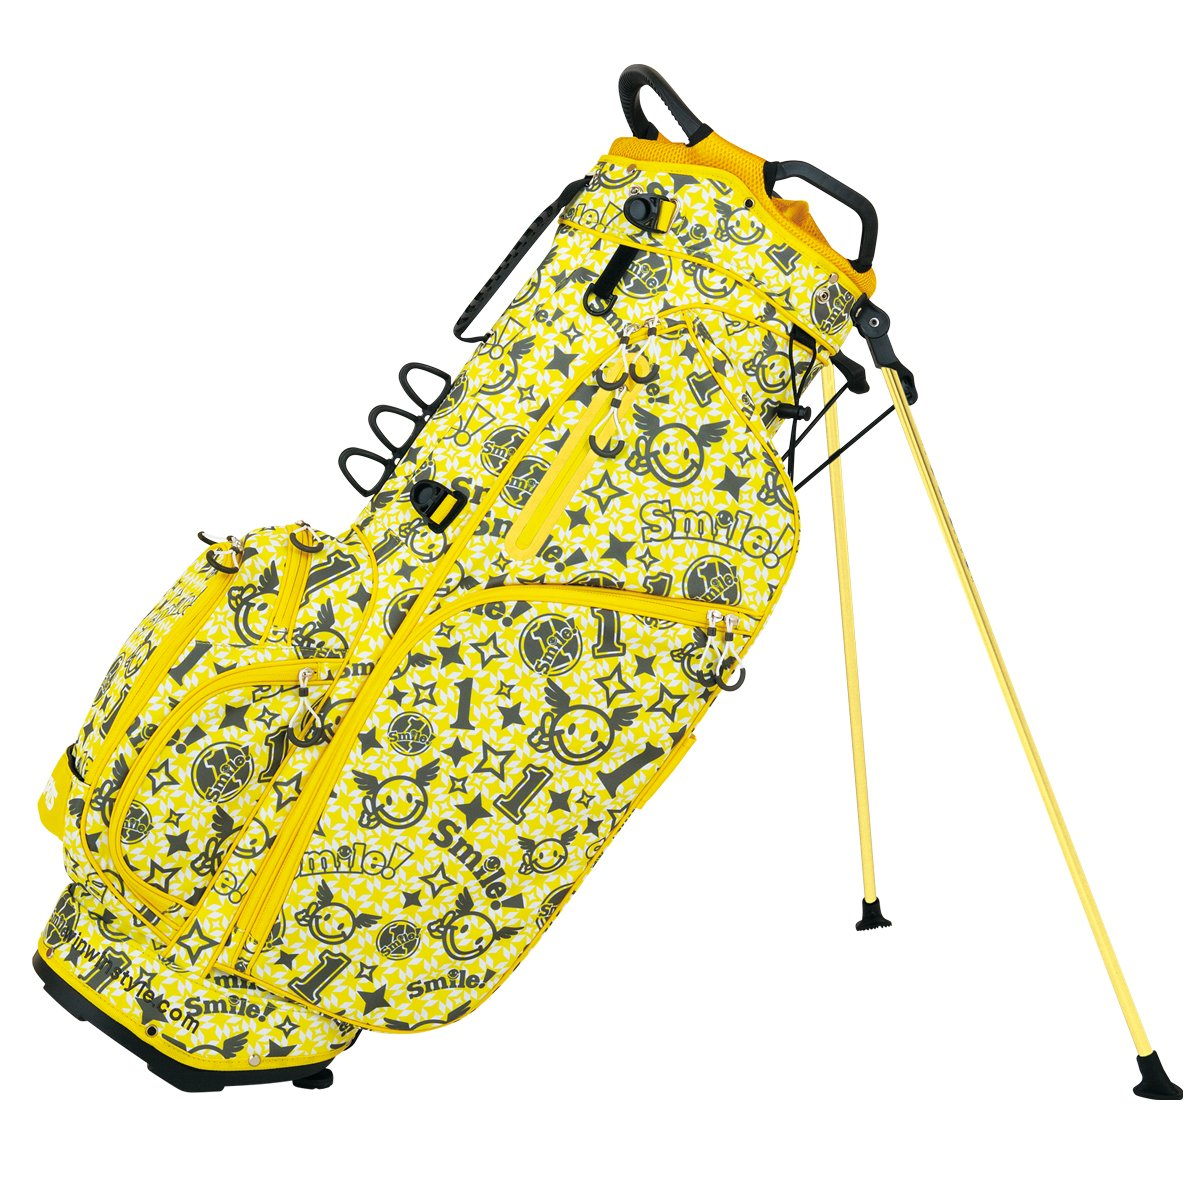 WINWIN STYLE(ウィンウィンスタイル) WINWIN キャディーバッグ PS SPORTS SMILE No.1 Light Weight SMILE Stand Stand Bag 9.0型 47インチ対応 ユニセックス CB-905 イエロー デザイン:総プリント加工 B07B4F8W7V, SOLT AND PEPPER:9dfd4b7c --- kapapa.site